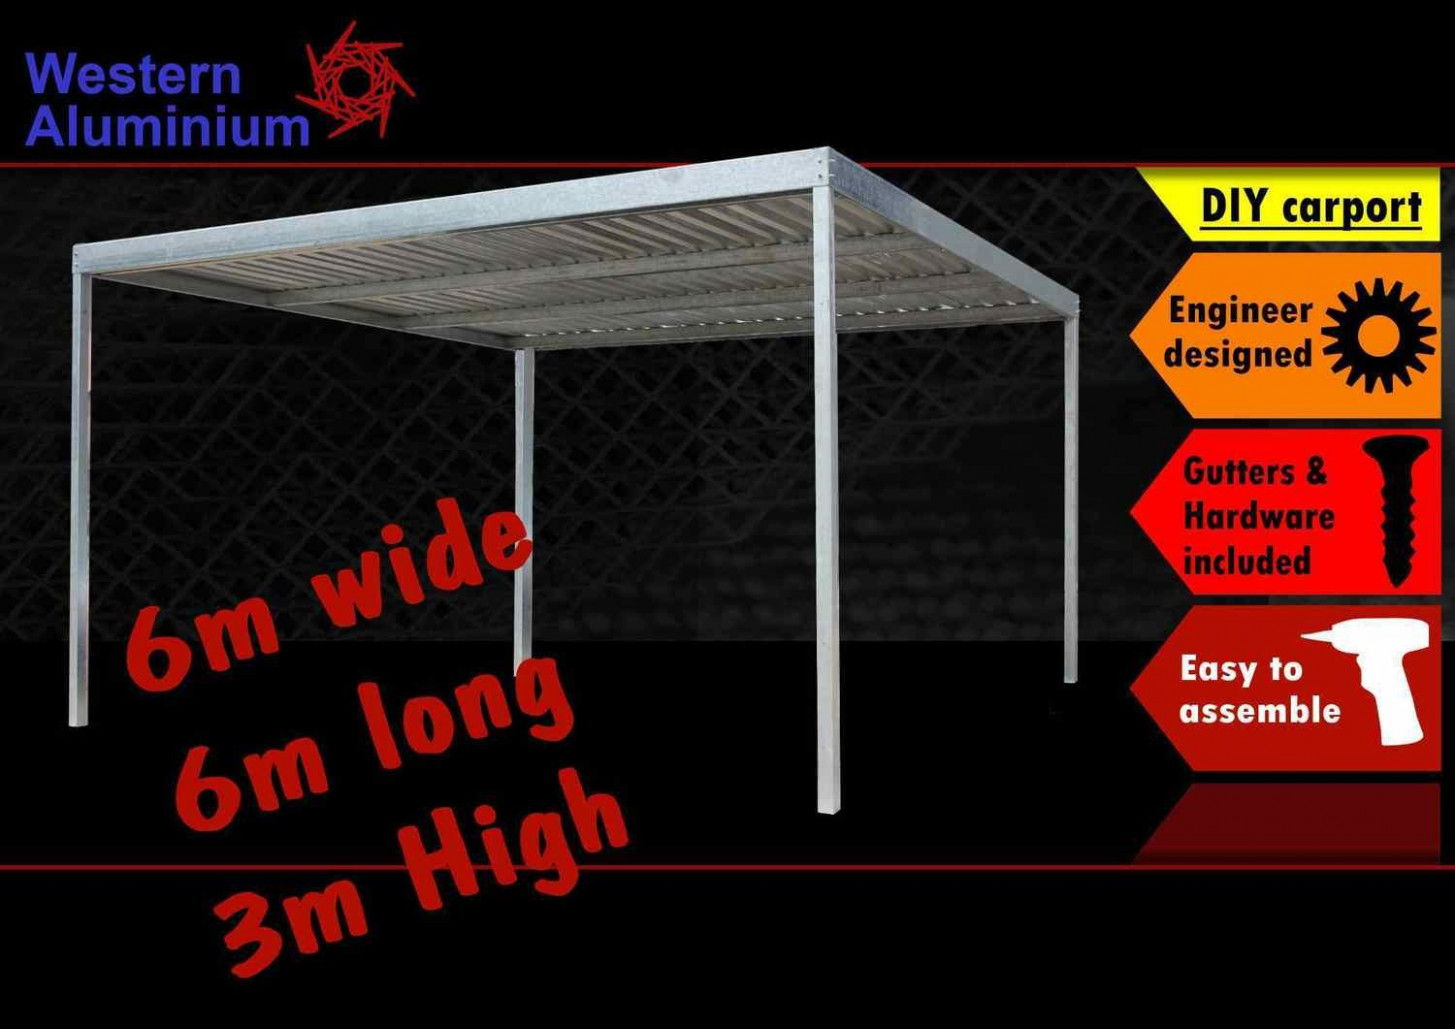 11m x 11m galvanised carport kit 11m high